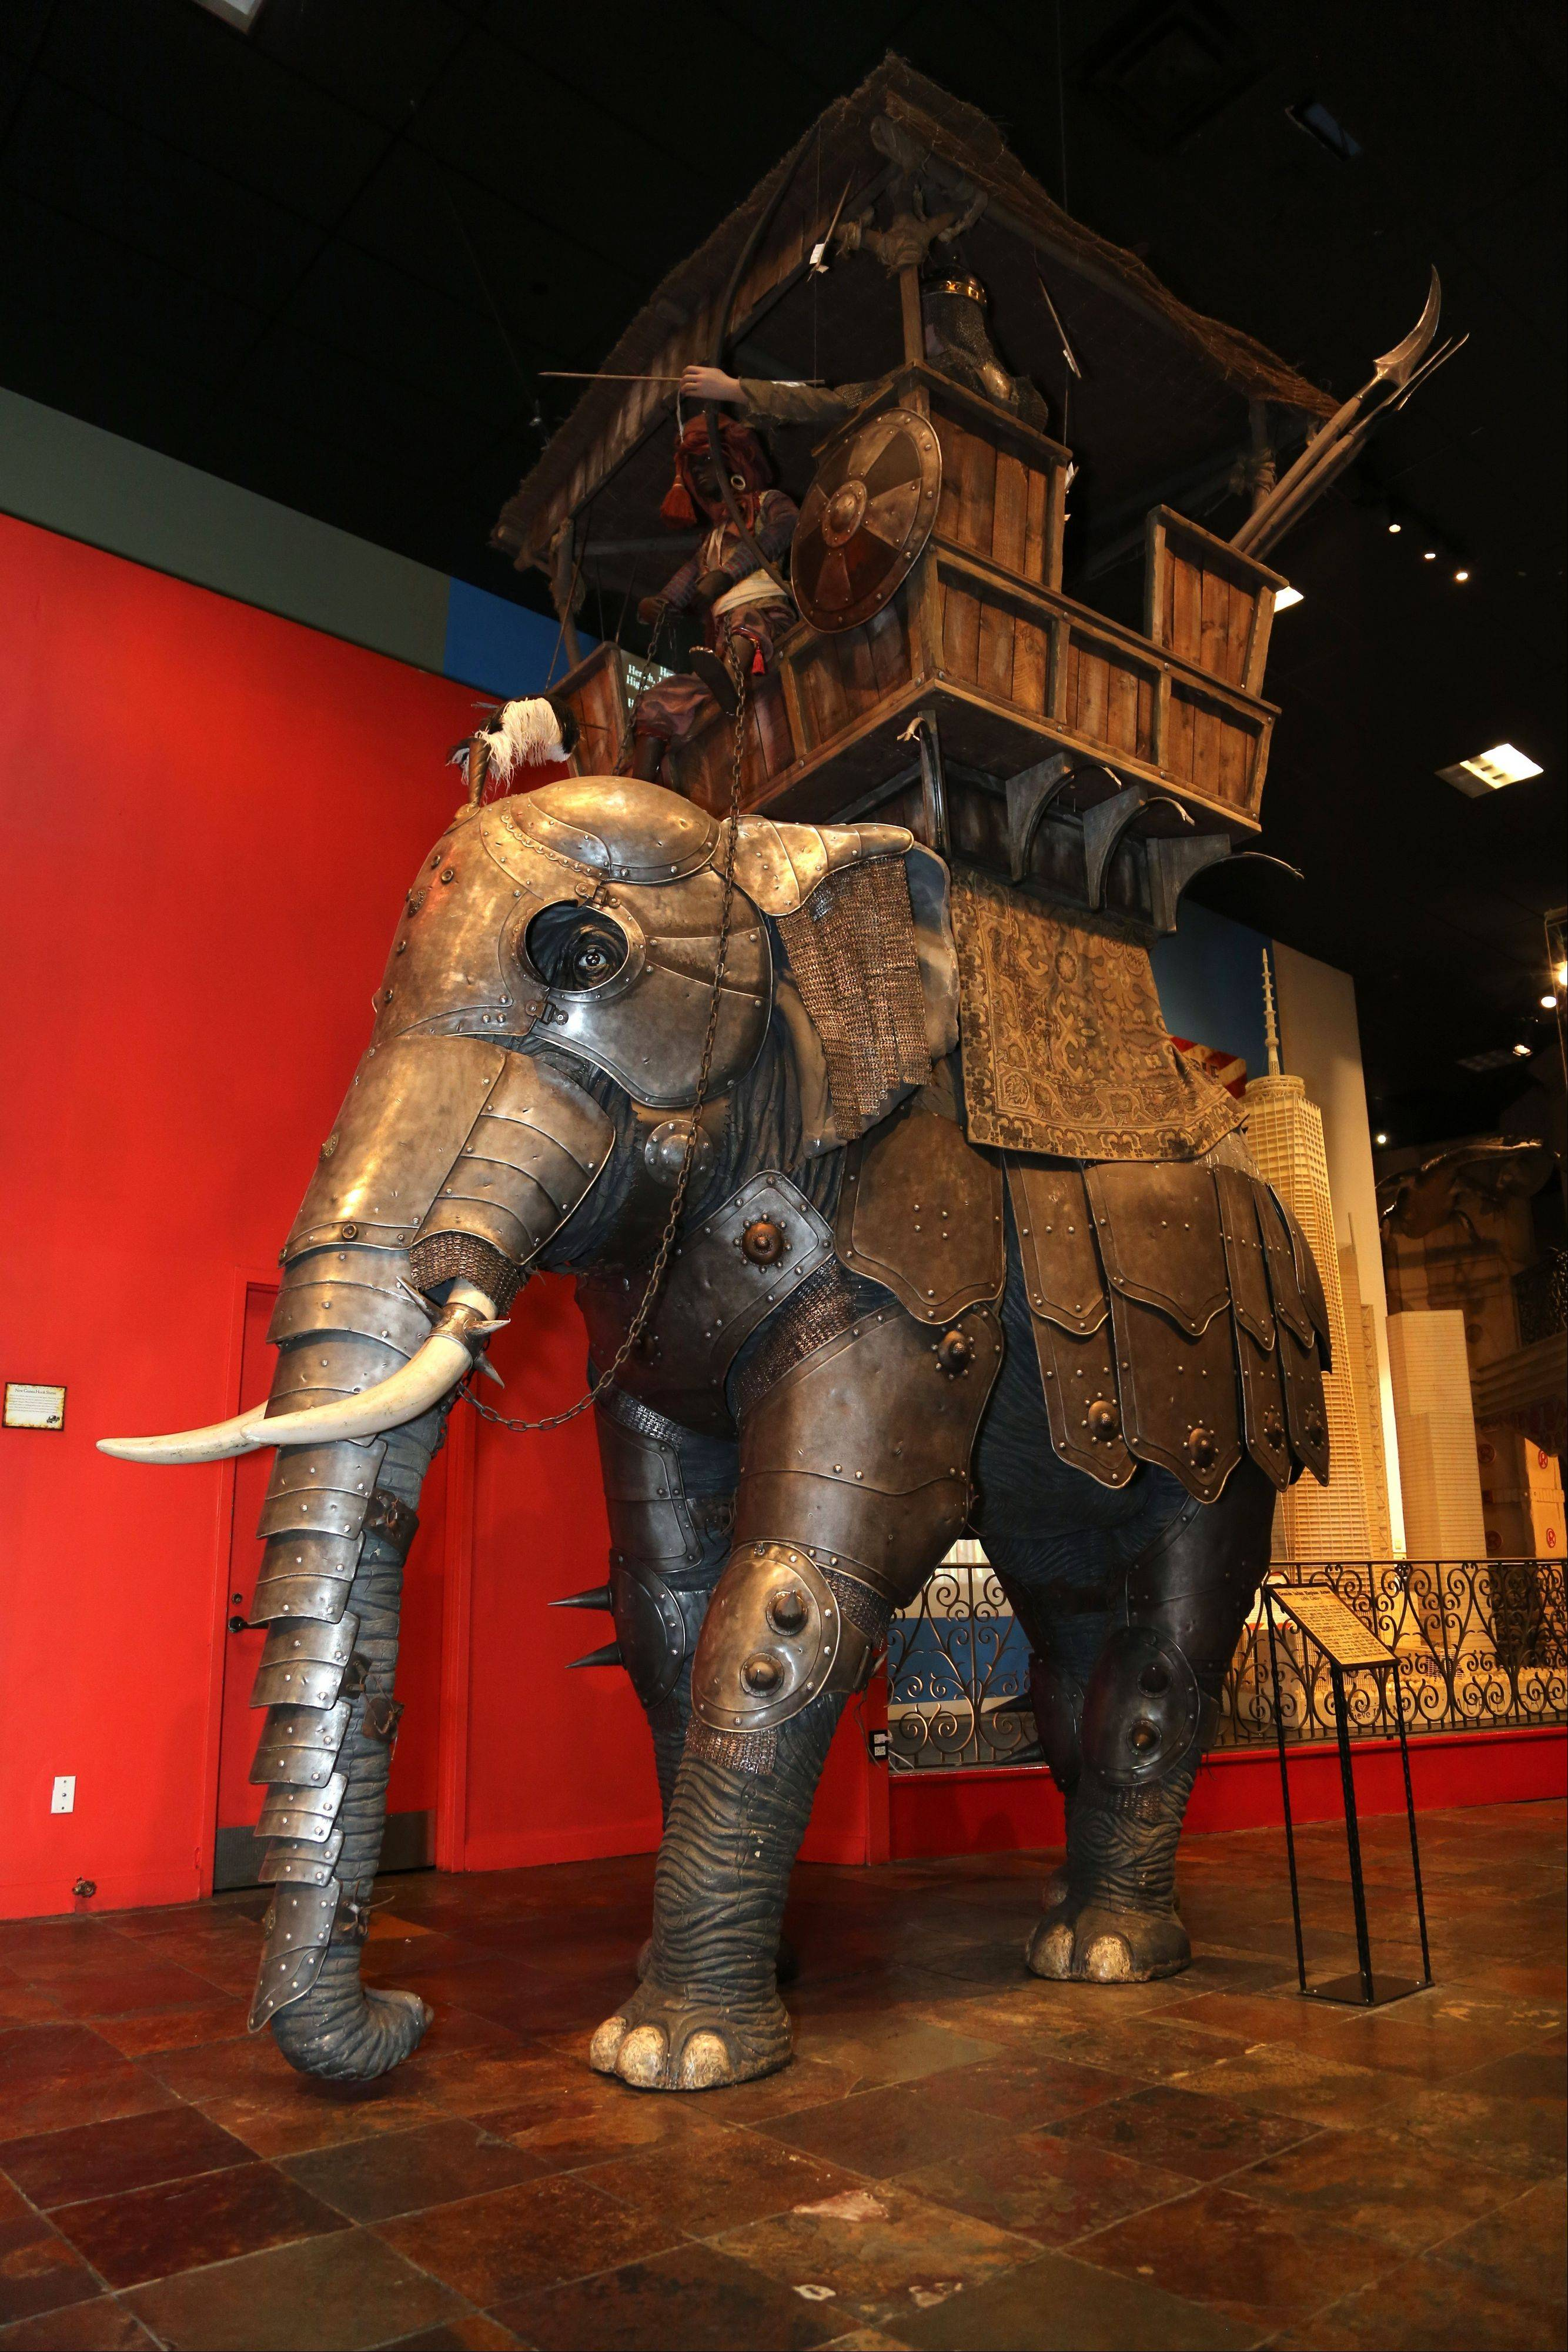 An 18th century, iron-clad elephant armor from India at Ripley's Times Square Odditorium in New York.